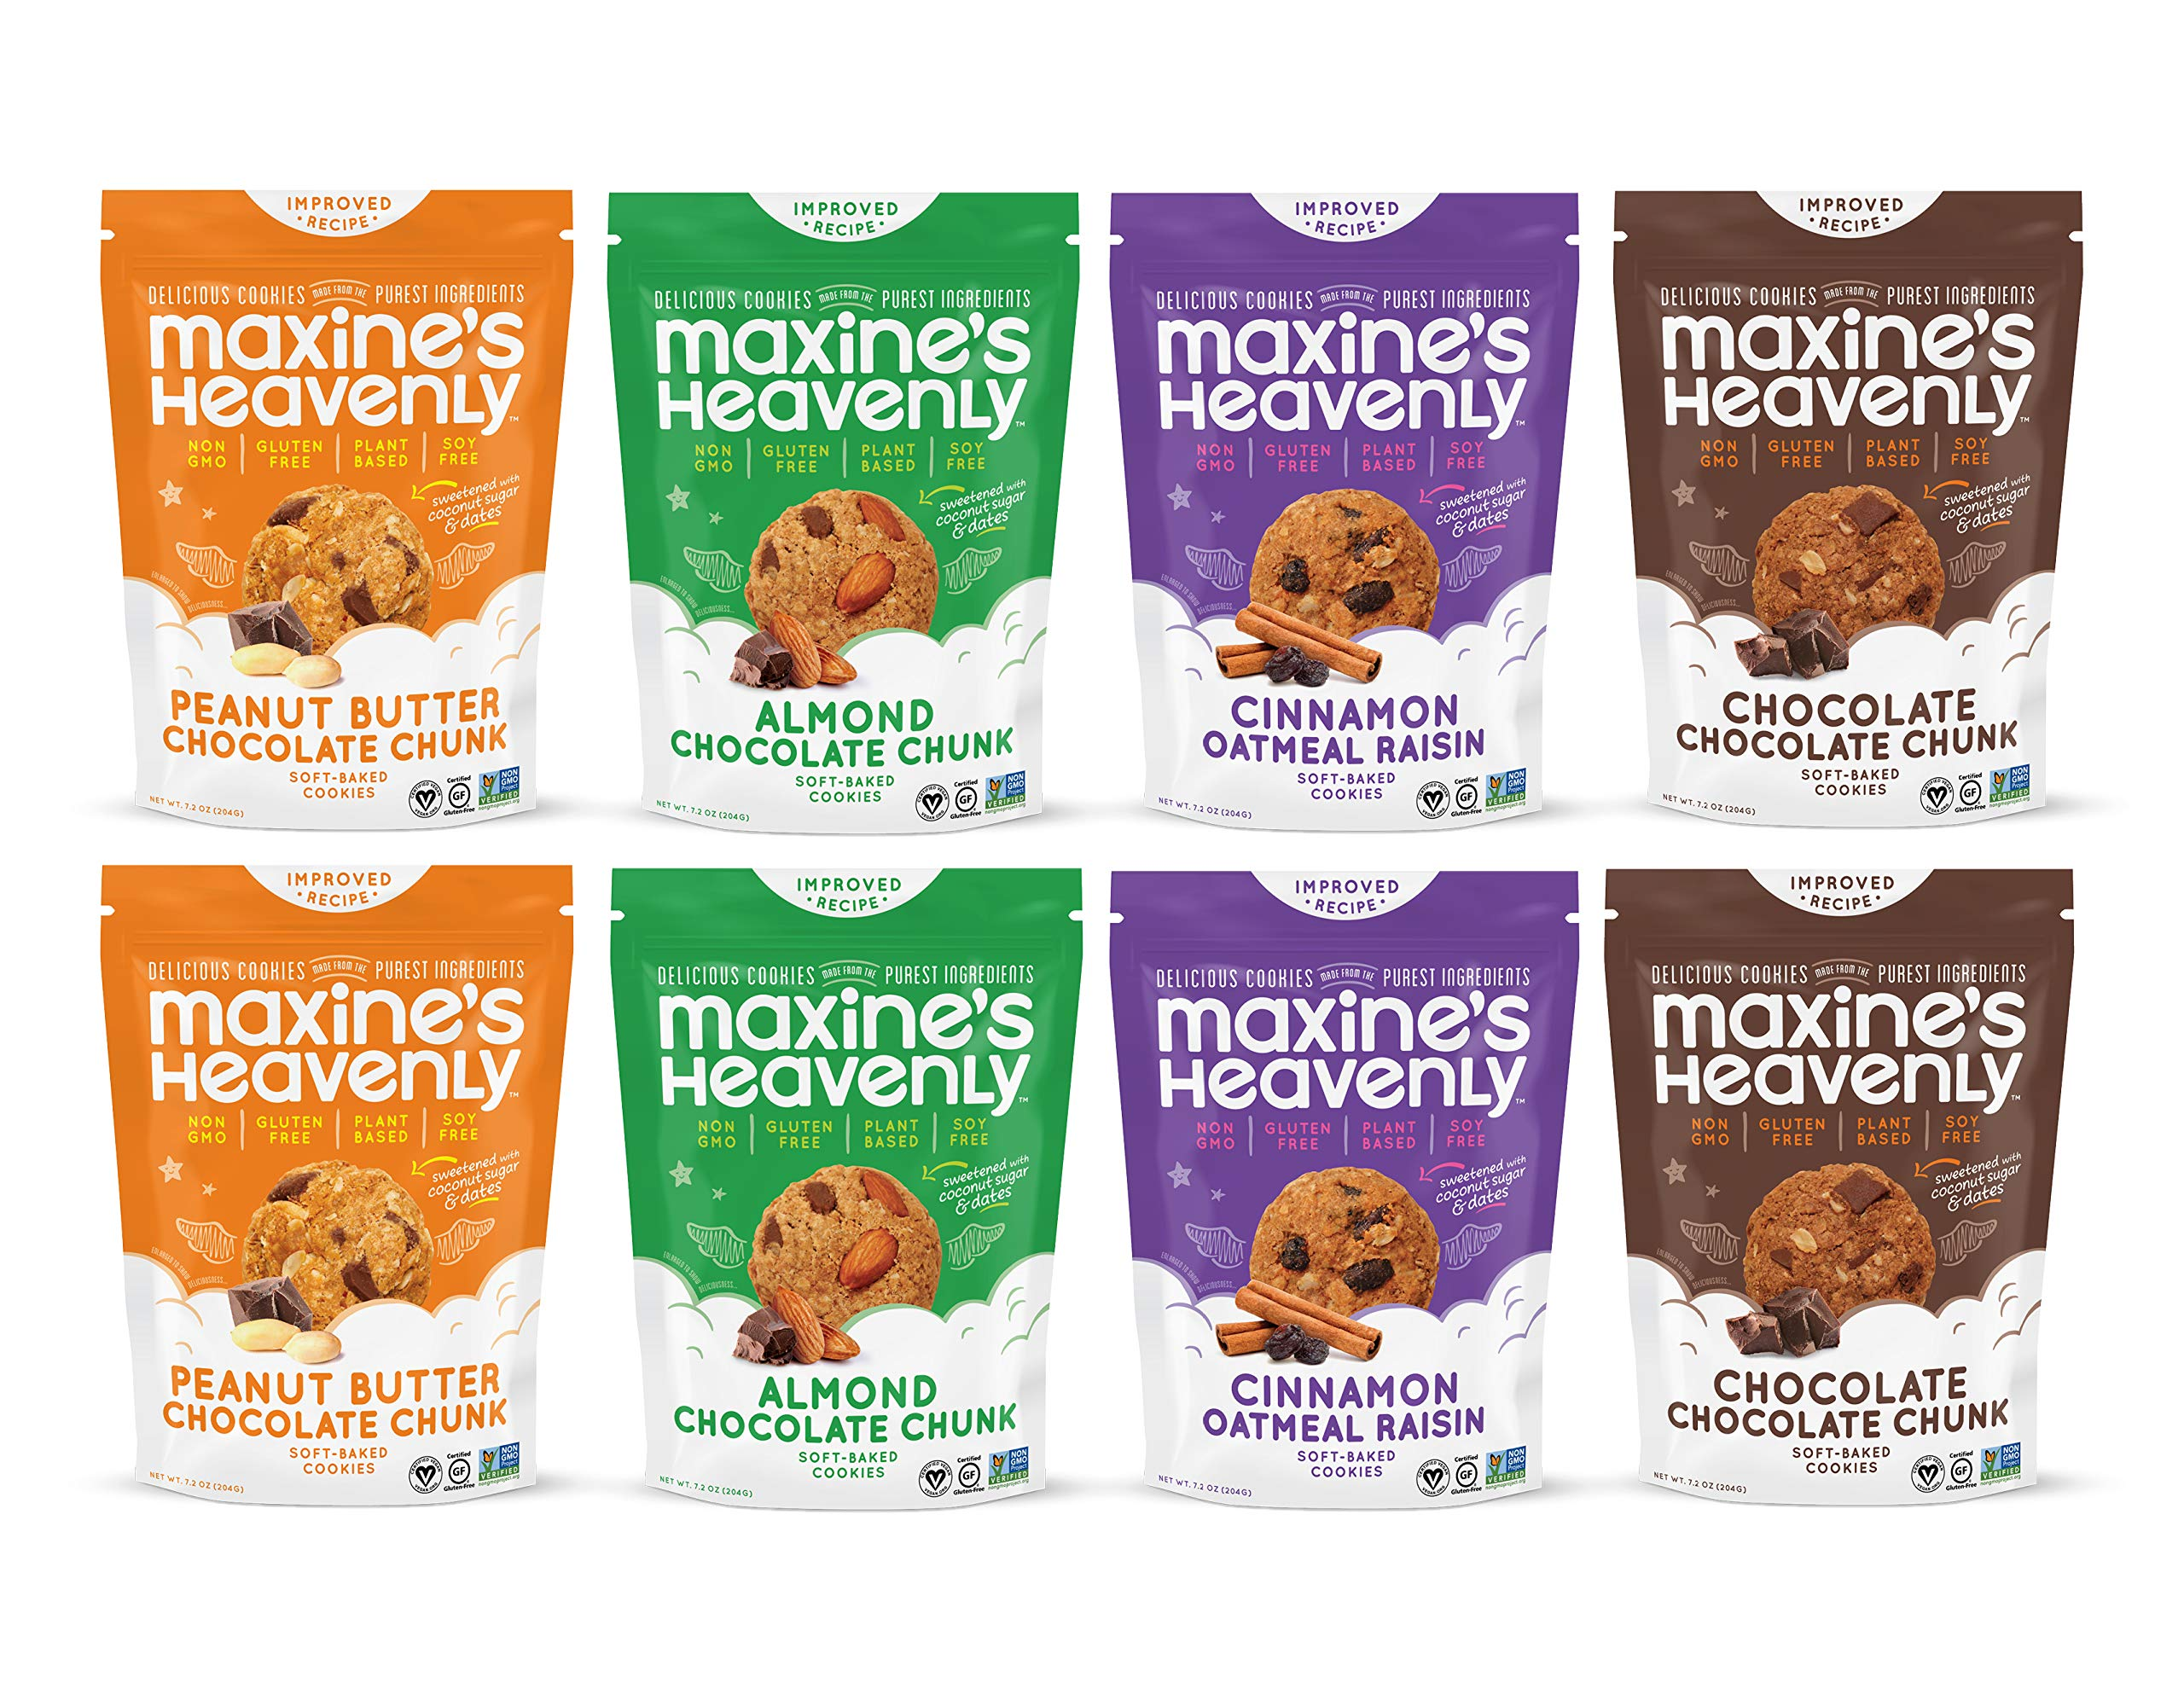 Maxine's Heavenly - Gluten Free, Vegan, Soy Free, Non-GMO Cookies - Variety eight Pack-7.2 ounces each (8 Pack) by Maxine's Heavenly